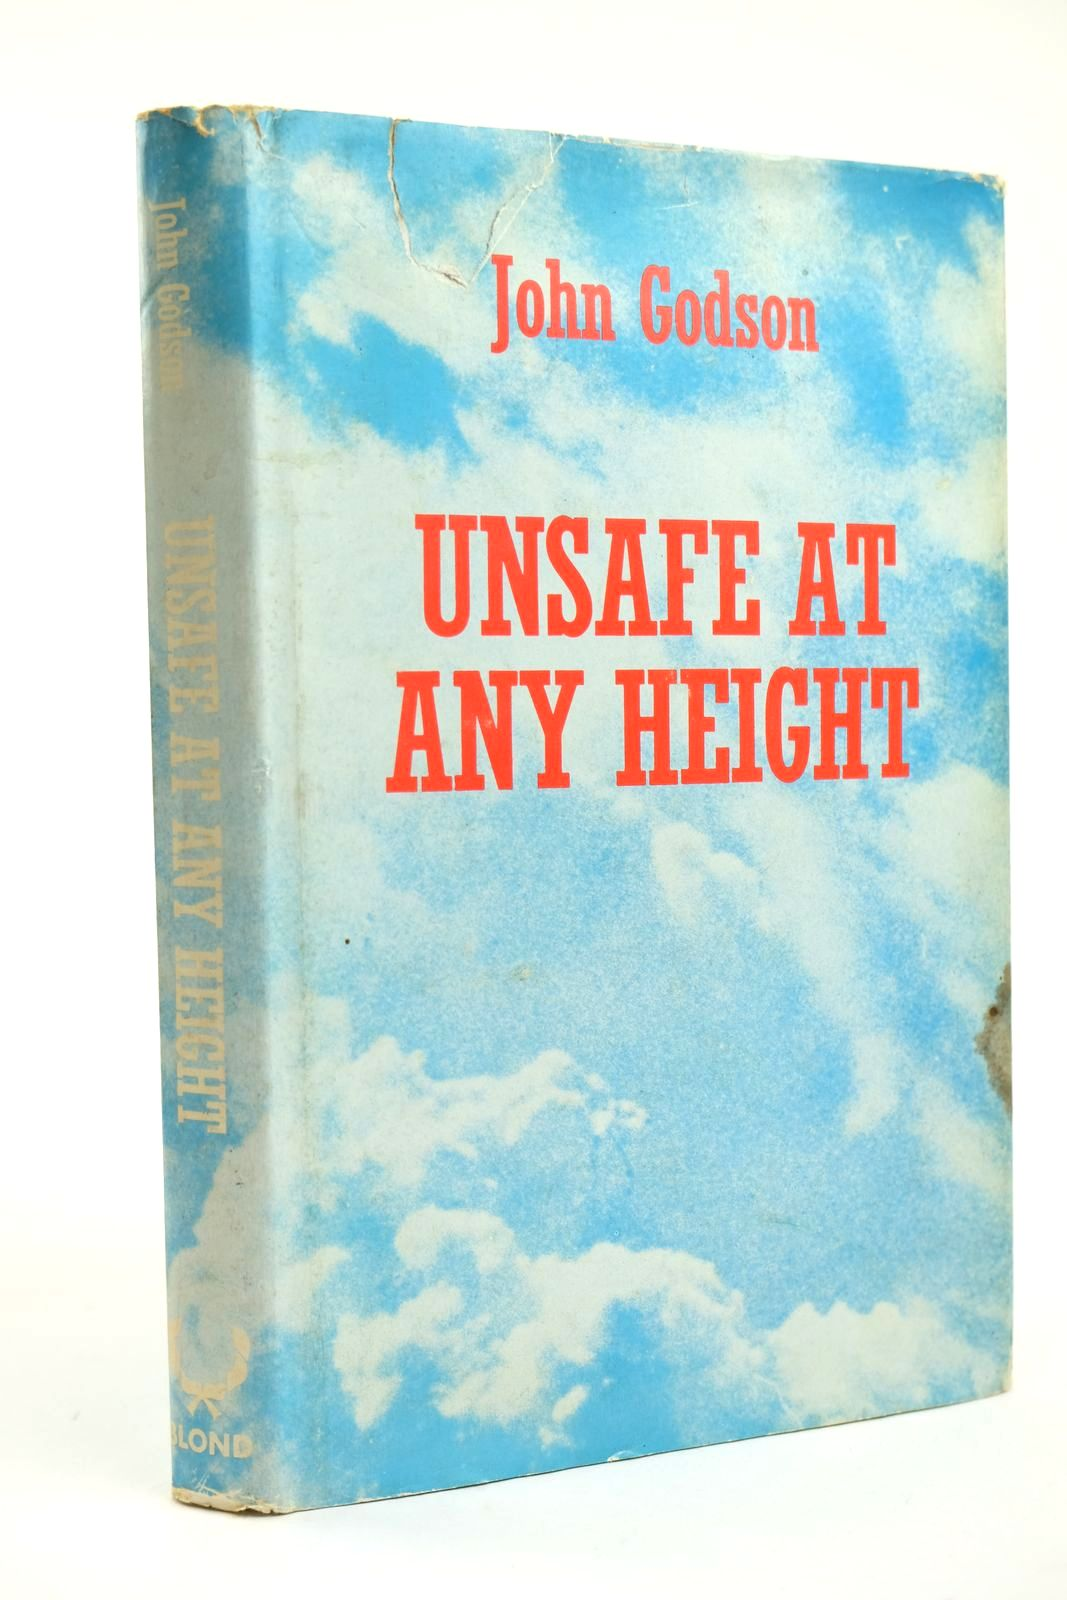 Photo of UNSAFE AT ANY HEIGHT written by Godson, John published by Anthony Blond (STOCK CODE: 2131879)  for sale by Stella & Rose's Books